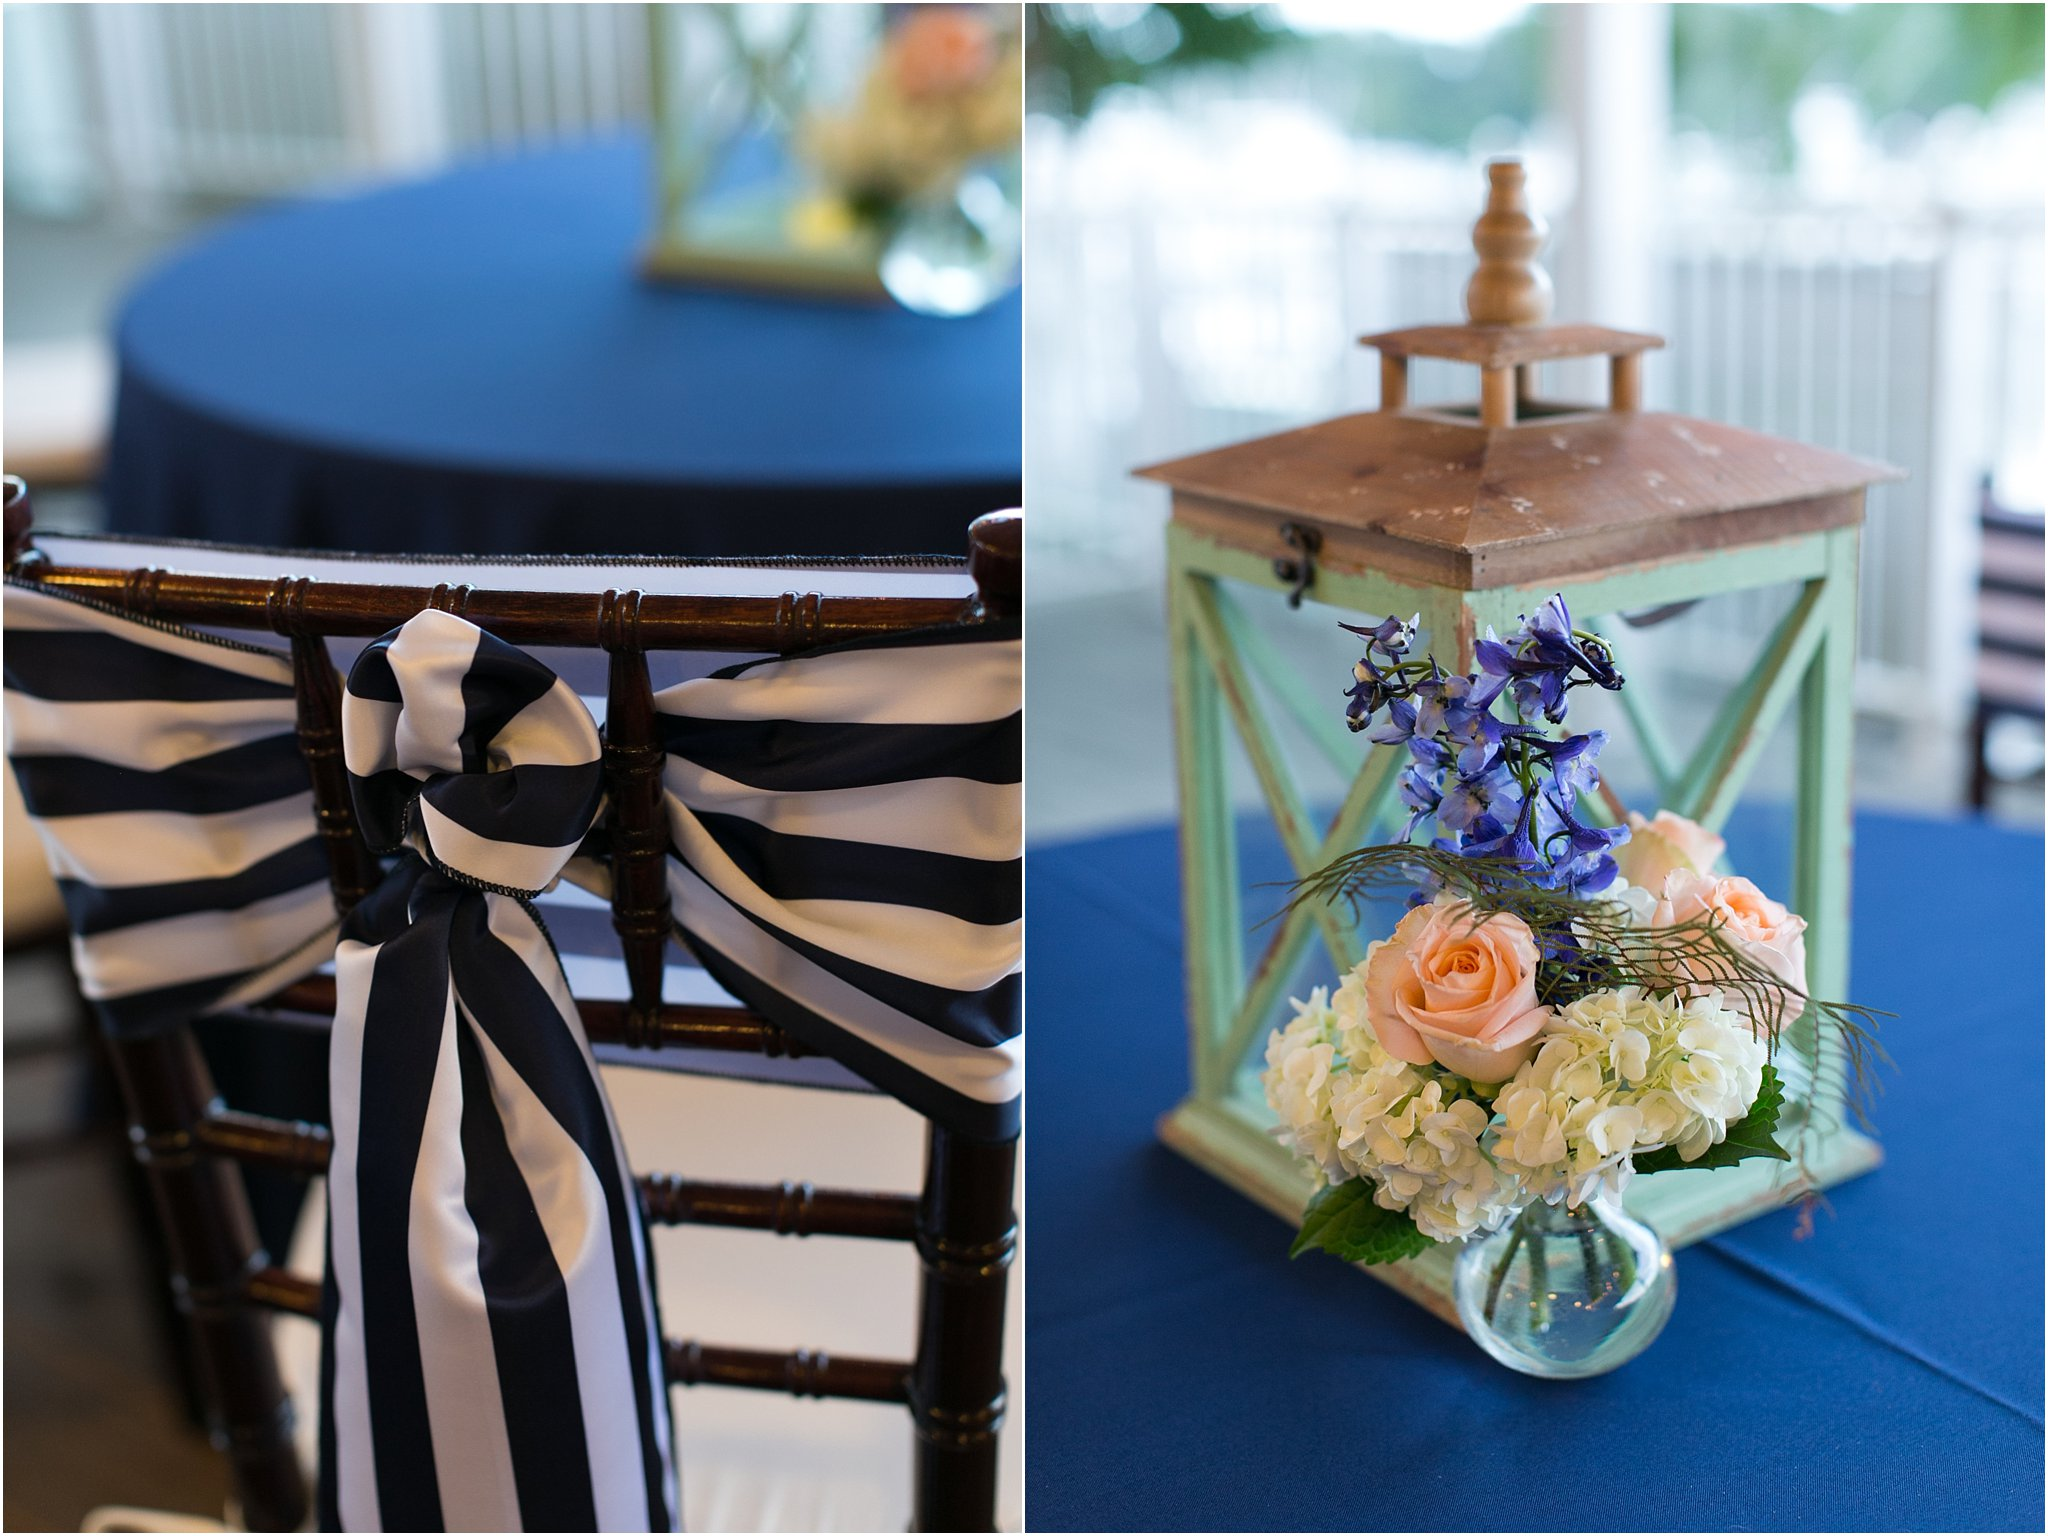 jessica_ryan_photography_wedding_photography_virginiabeach_virginia_candid_authentic_wedding_portraits_marina_shores_yacht_club_chesapeake_bay_1916